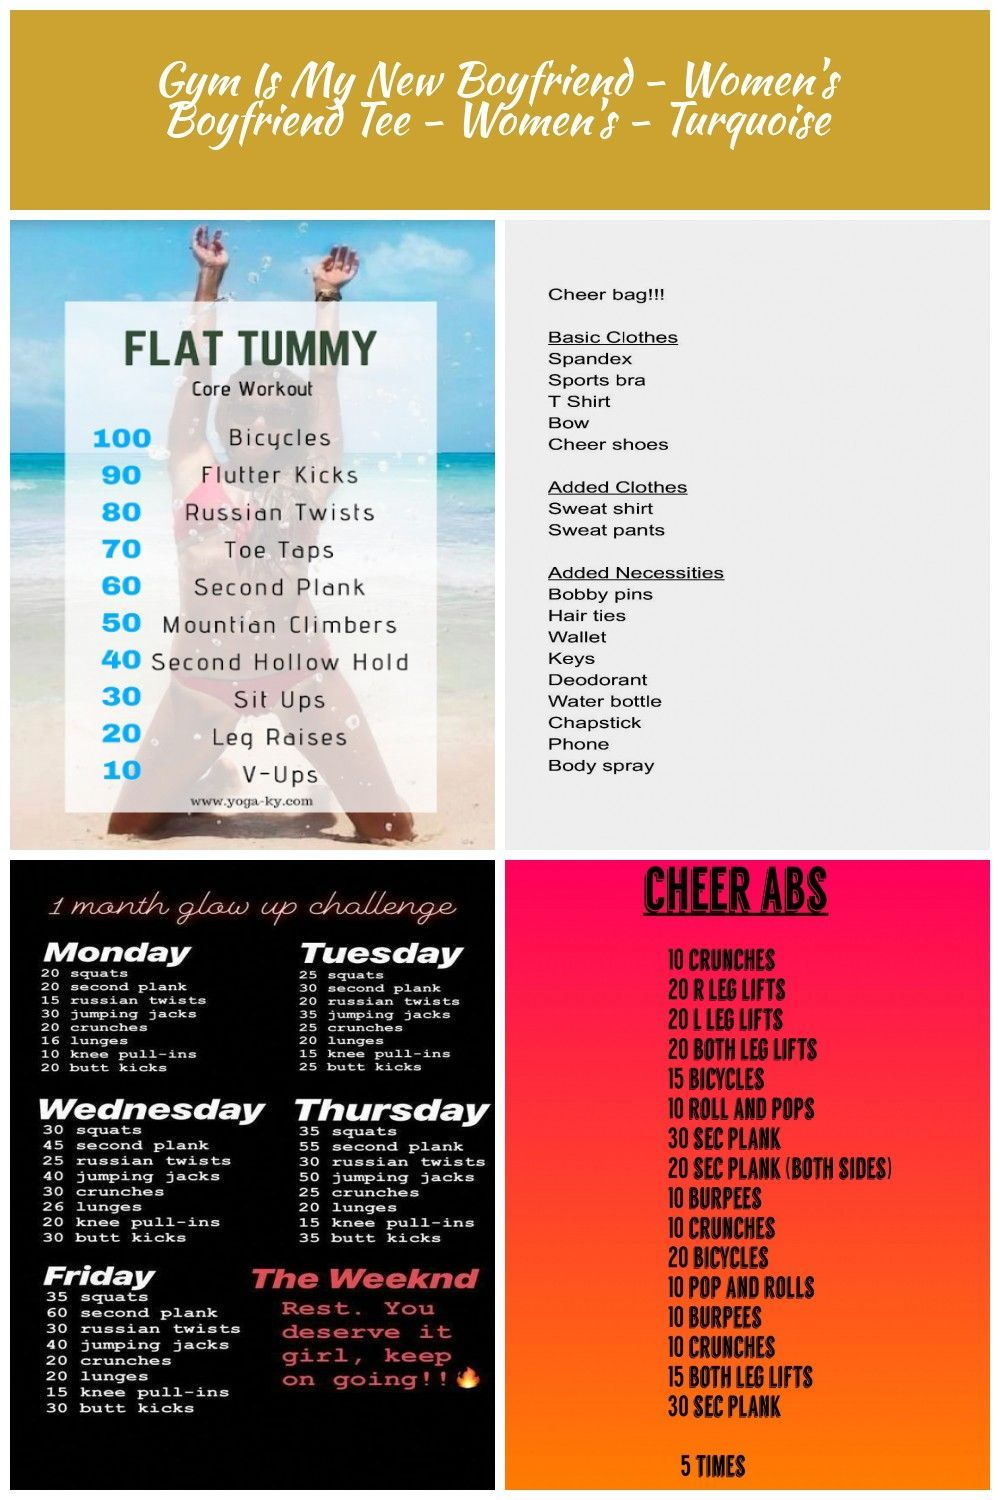 Core workouts for that flat tummy! #workout #tummy #abs cheer Workouts #cheerworkouts Core workouts for that flat tummy! #workout #tummy #abs cheer Workouts #cheerworkouts